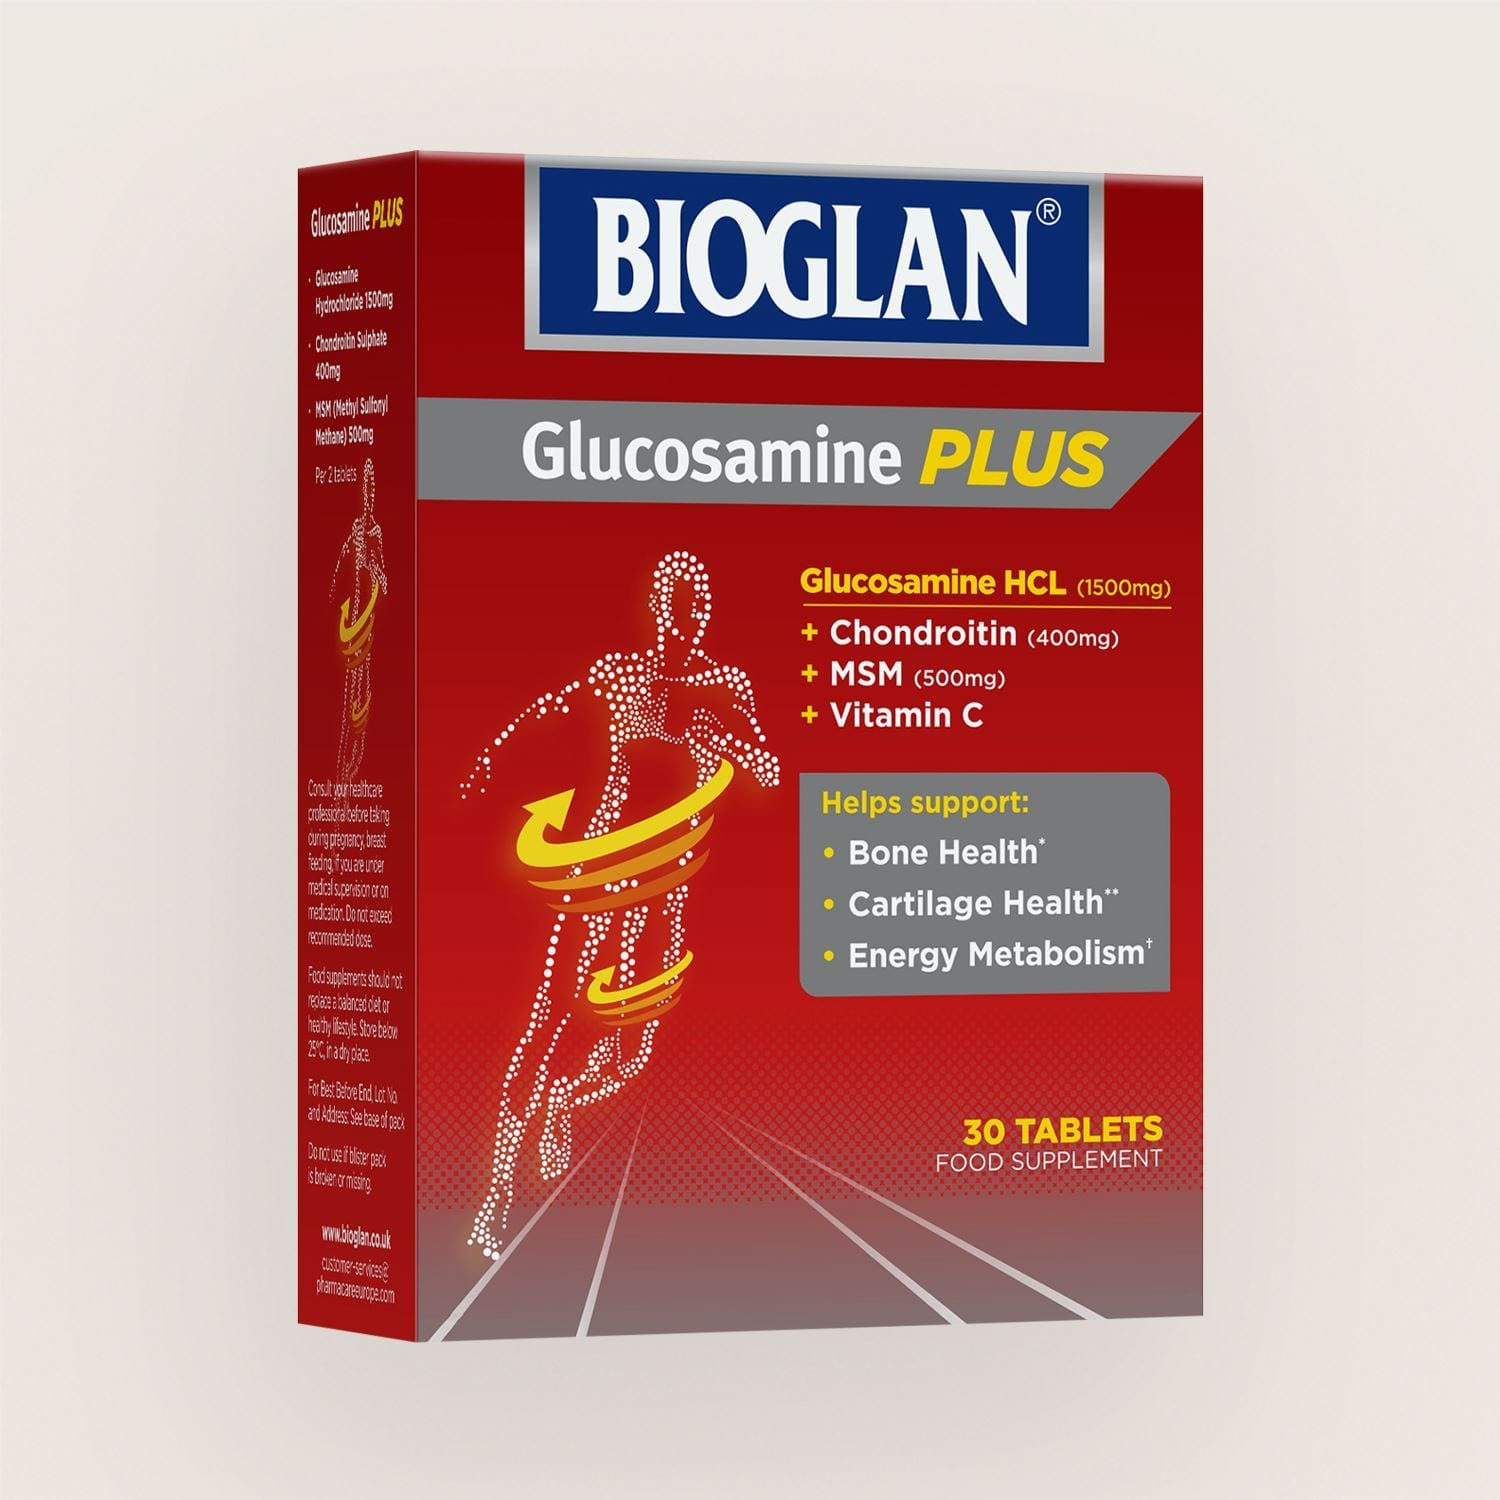 Bioglan Glucosamine Plus 30 Tablets